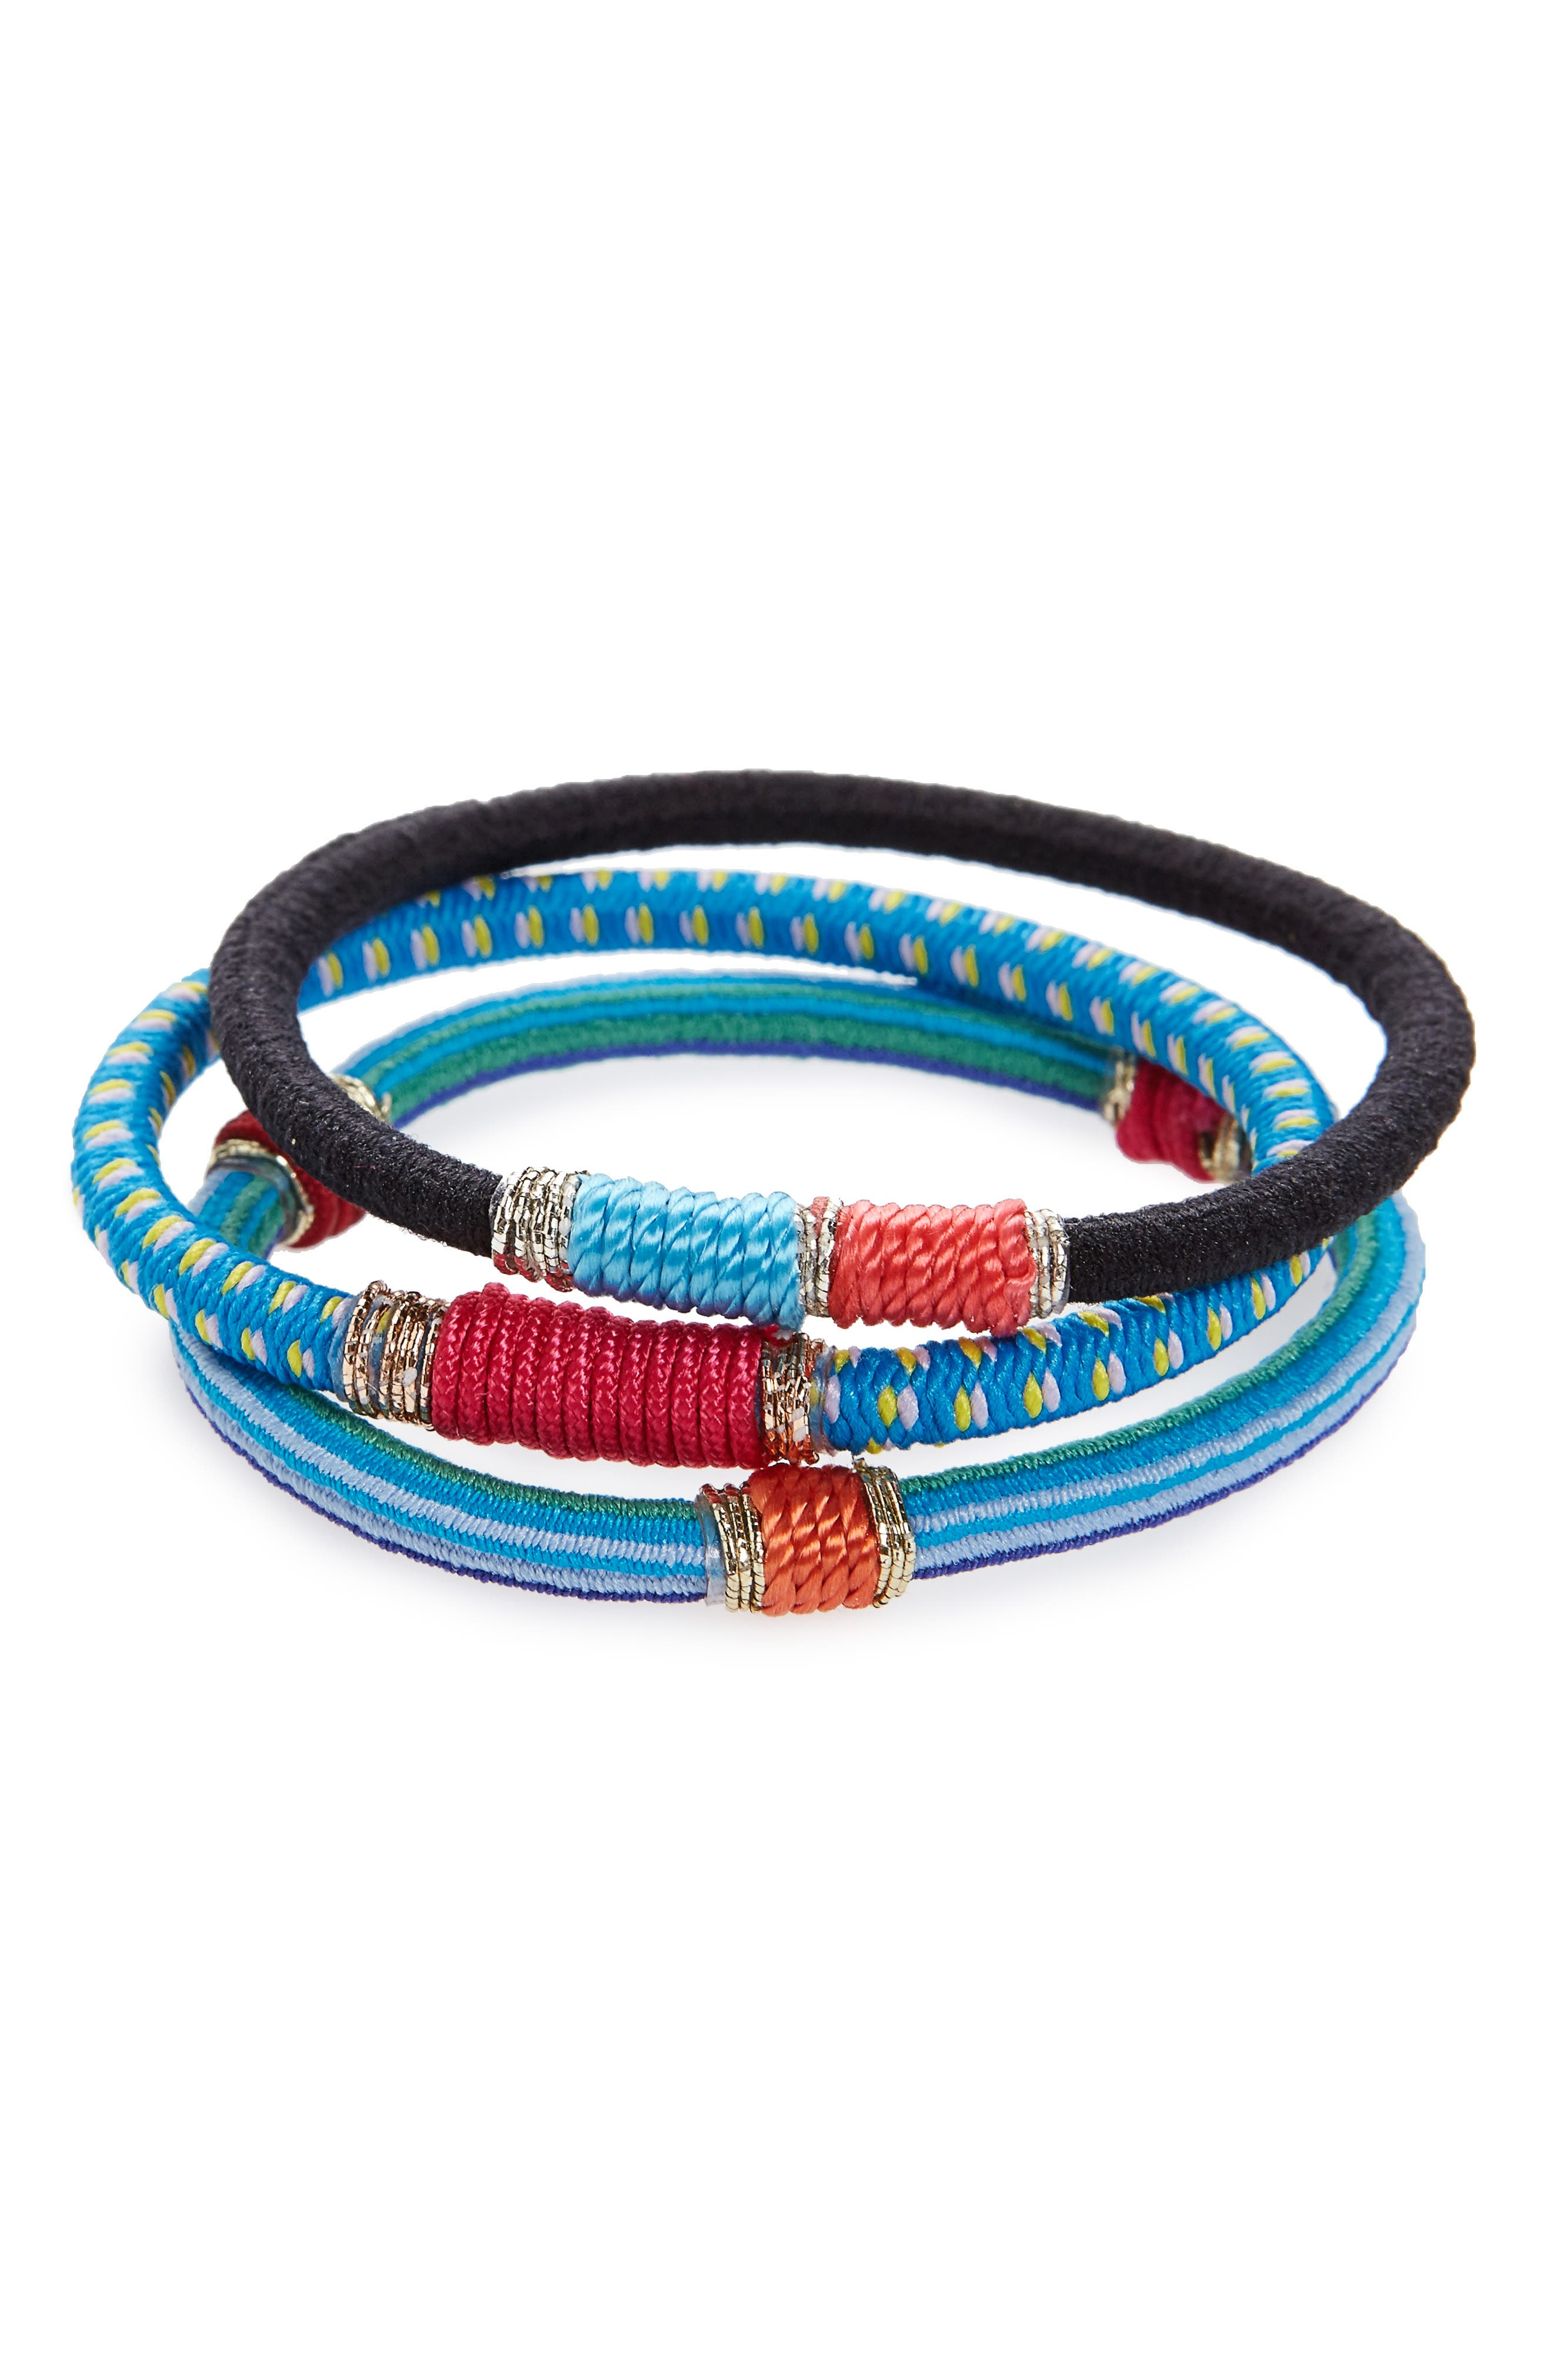 Moroccan Set of 3 Ponytail Holders,                         Main,                         color, 460